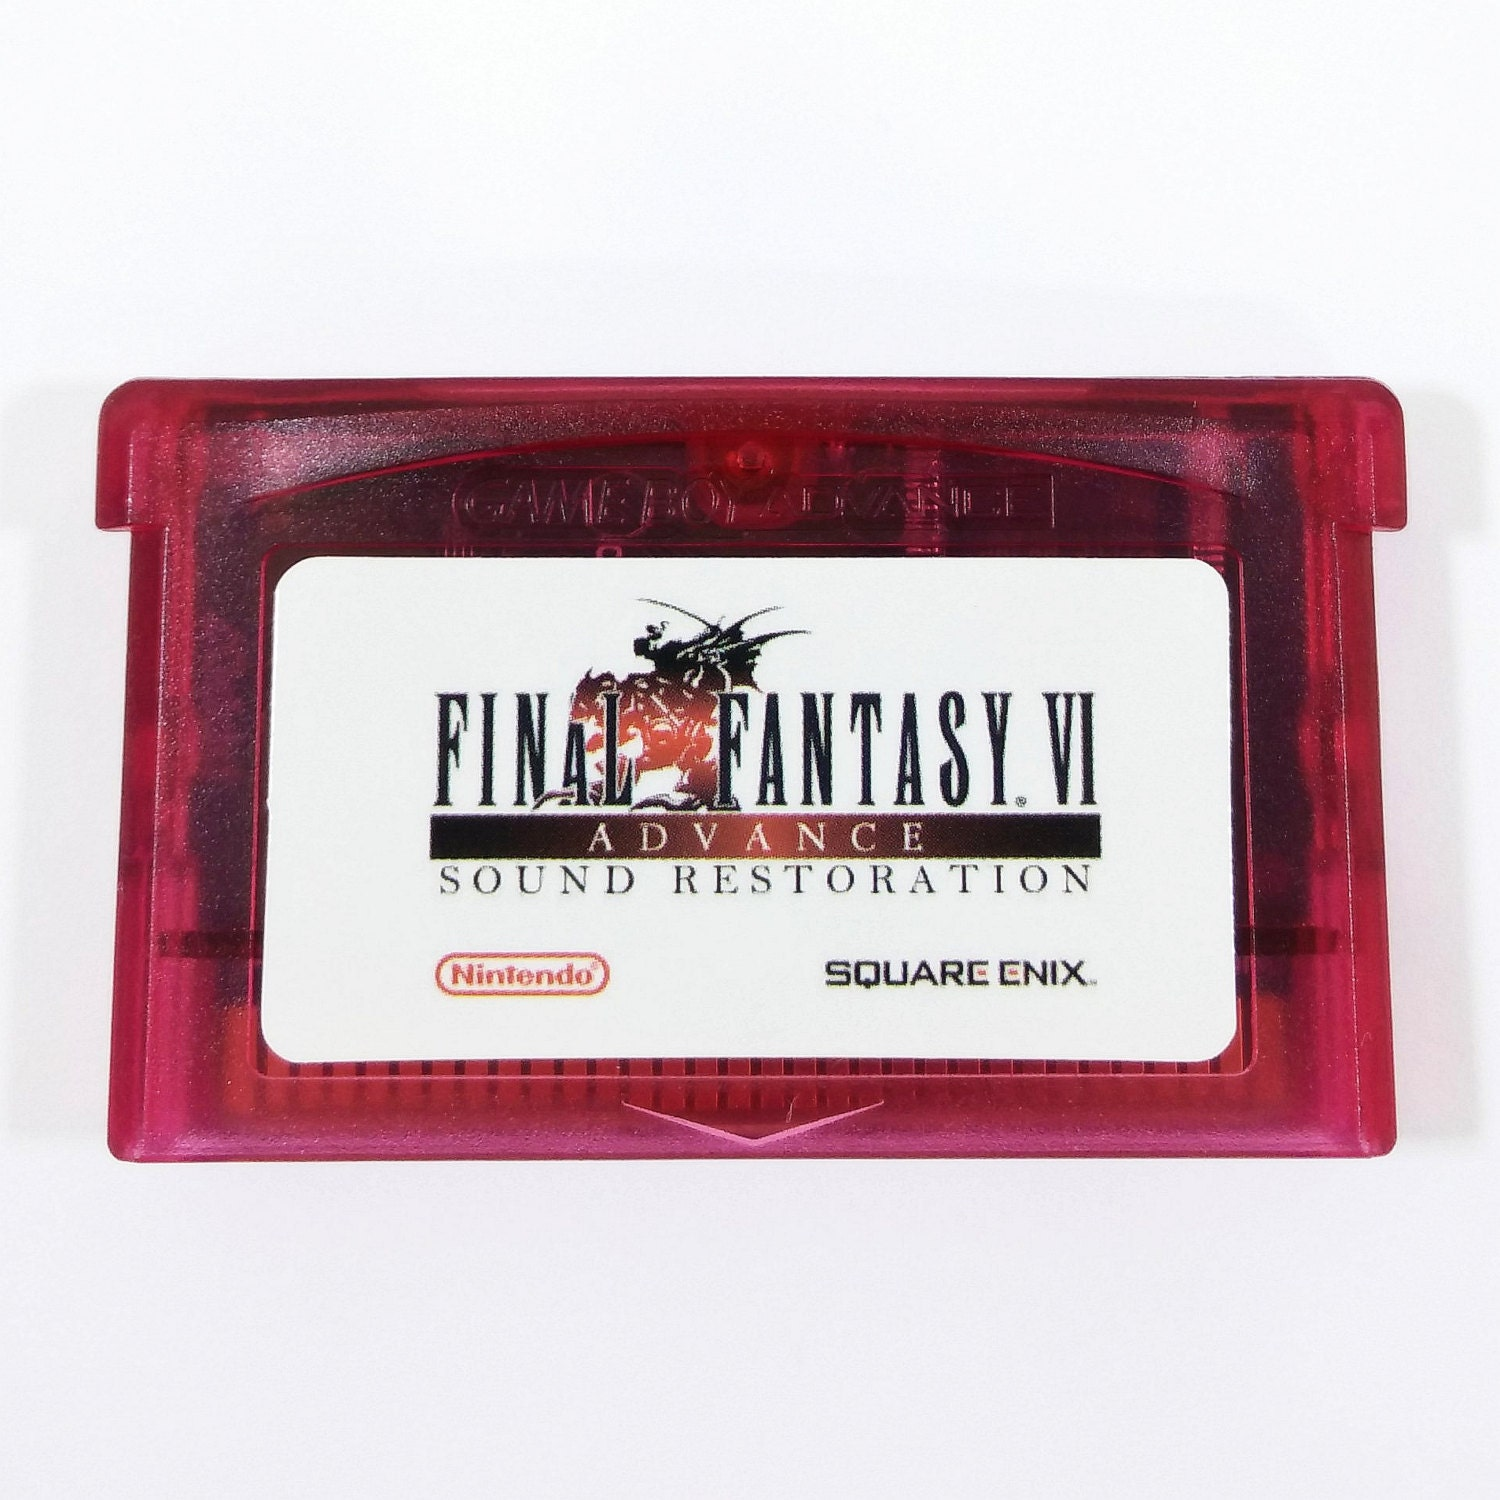 Gameboy color and advance rpg games - Final Fantasy 6 Vi Advance Restored Gba Cartridge Sound And Color Restoration For Nintendo Game Boy Advance Rpg Cart Free Shipping